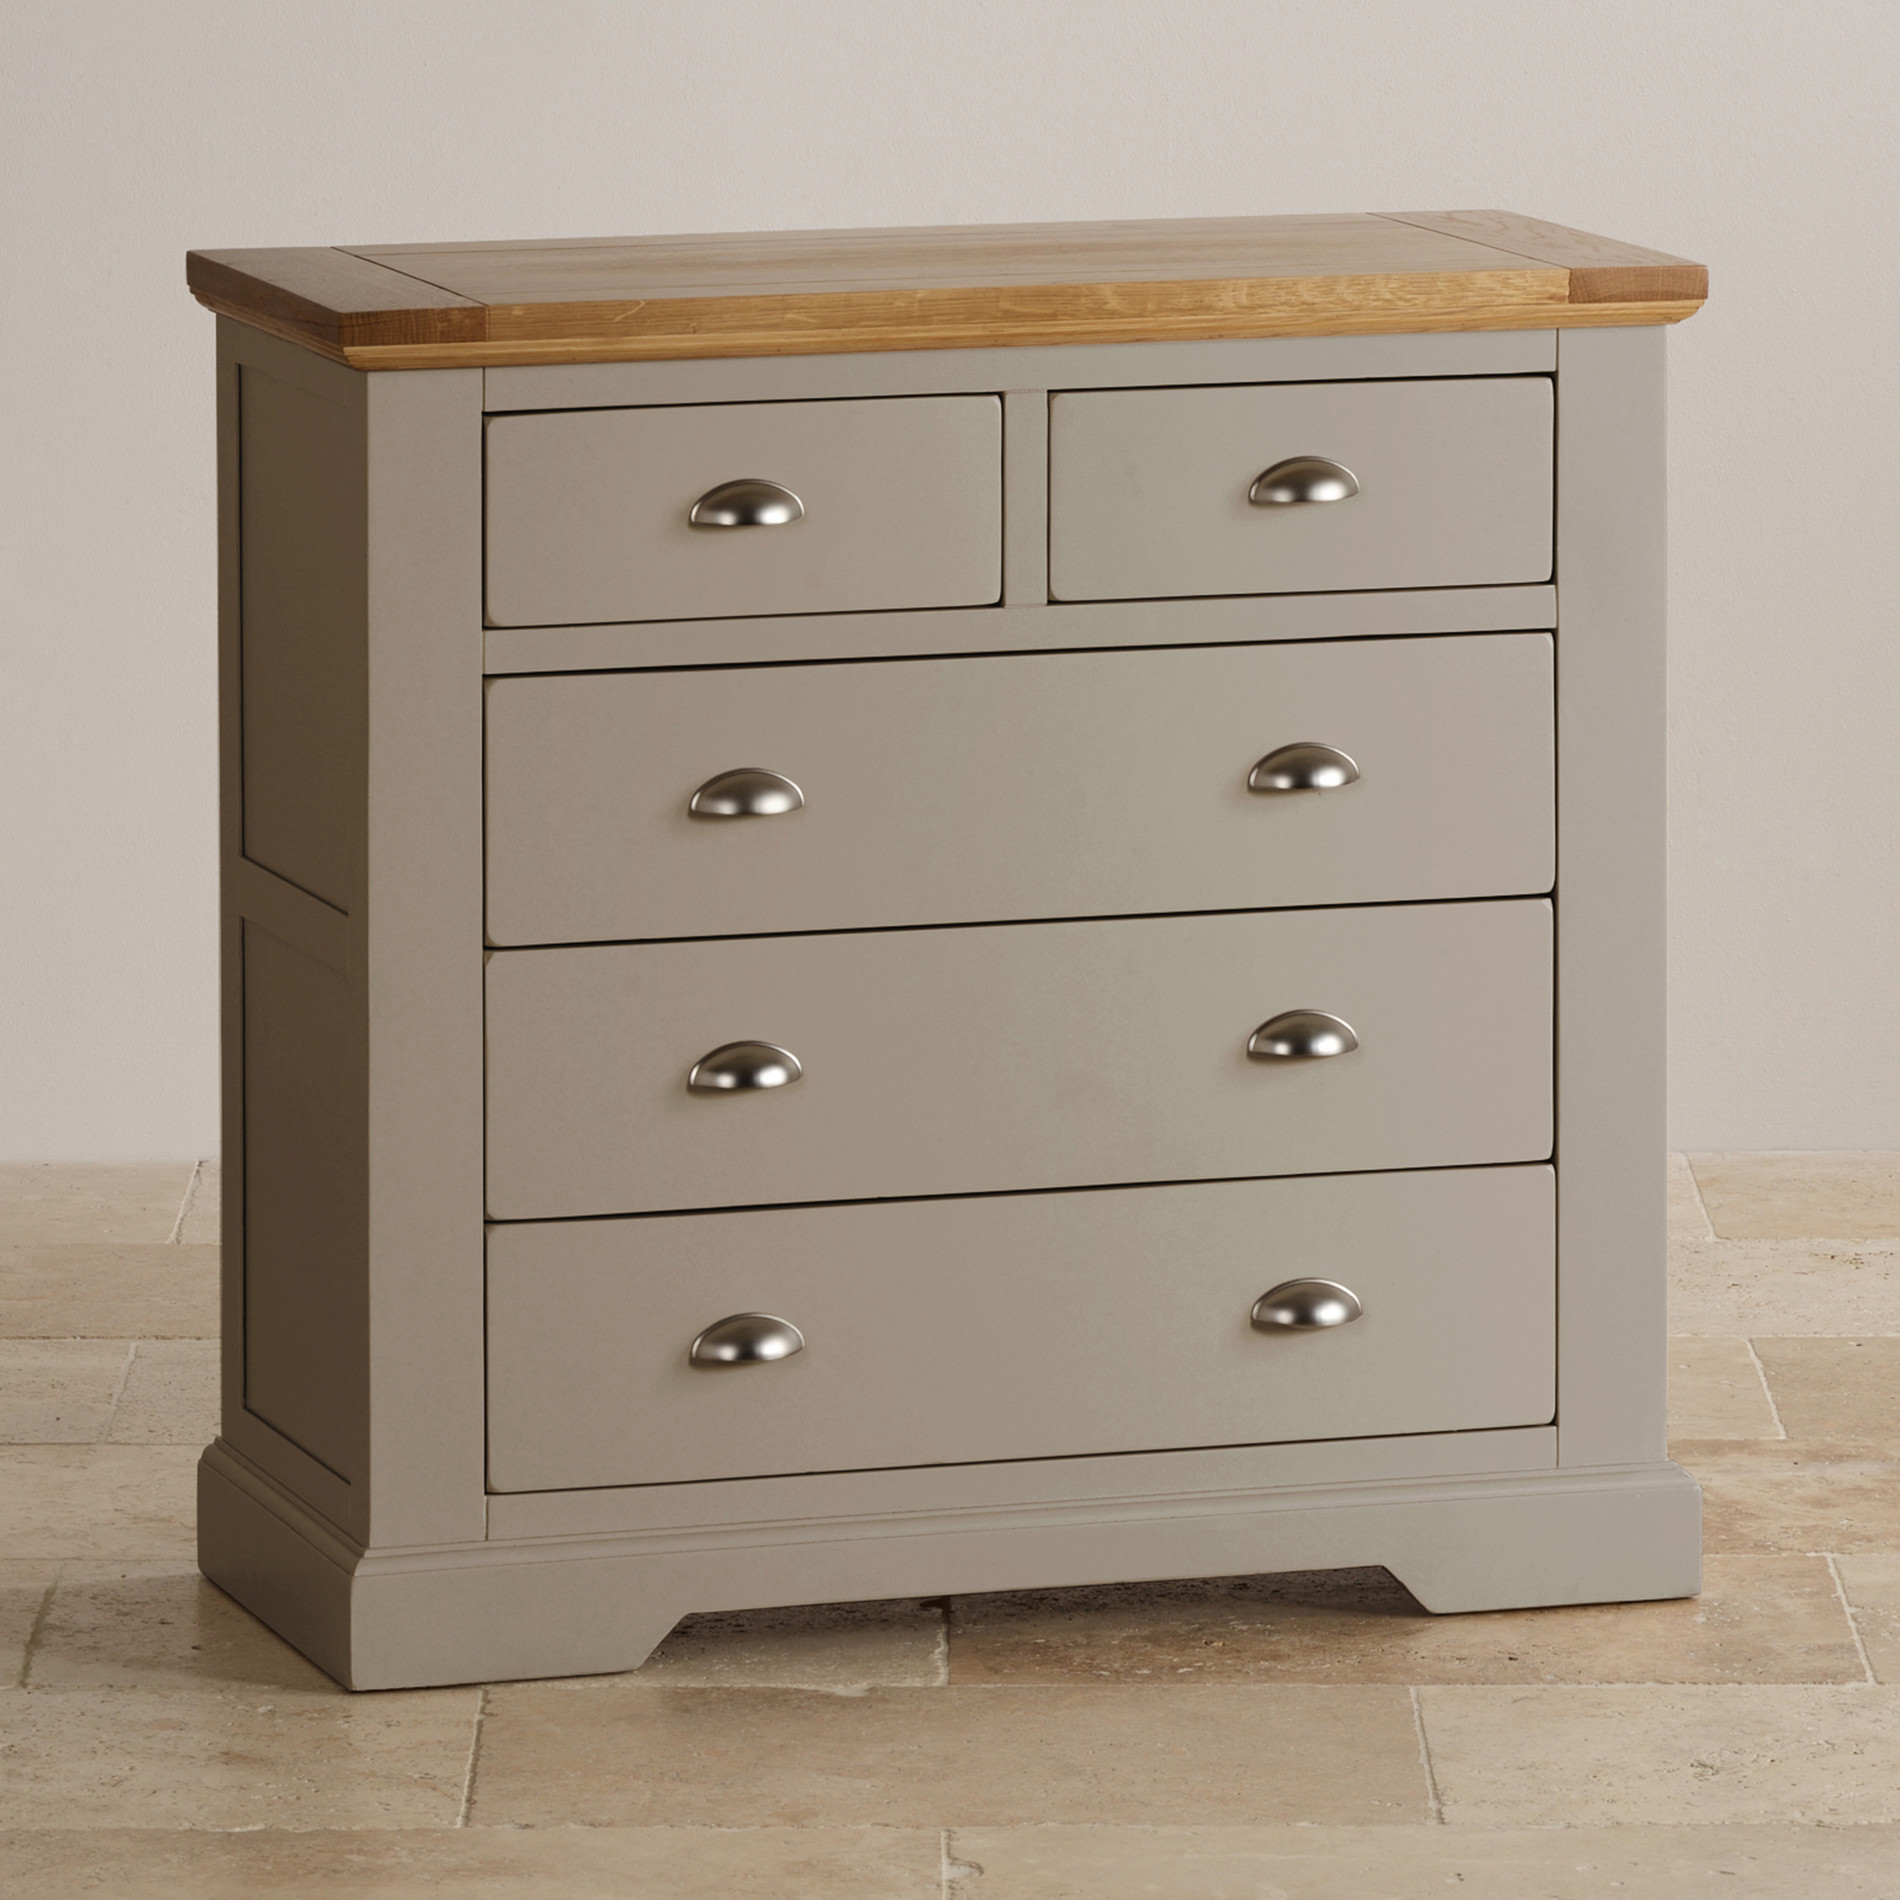 grey painted furnitureNatural oak and light grey painted 23 chest of drawers